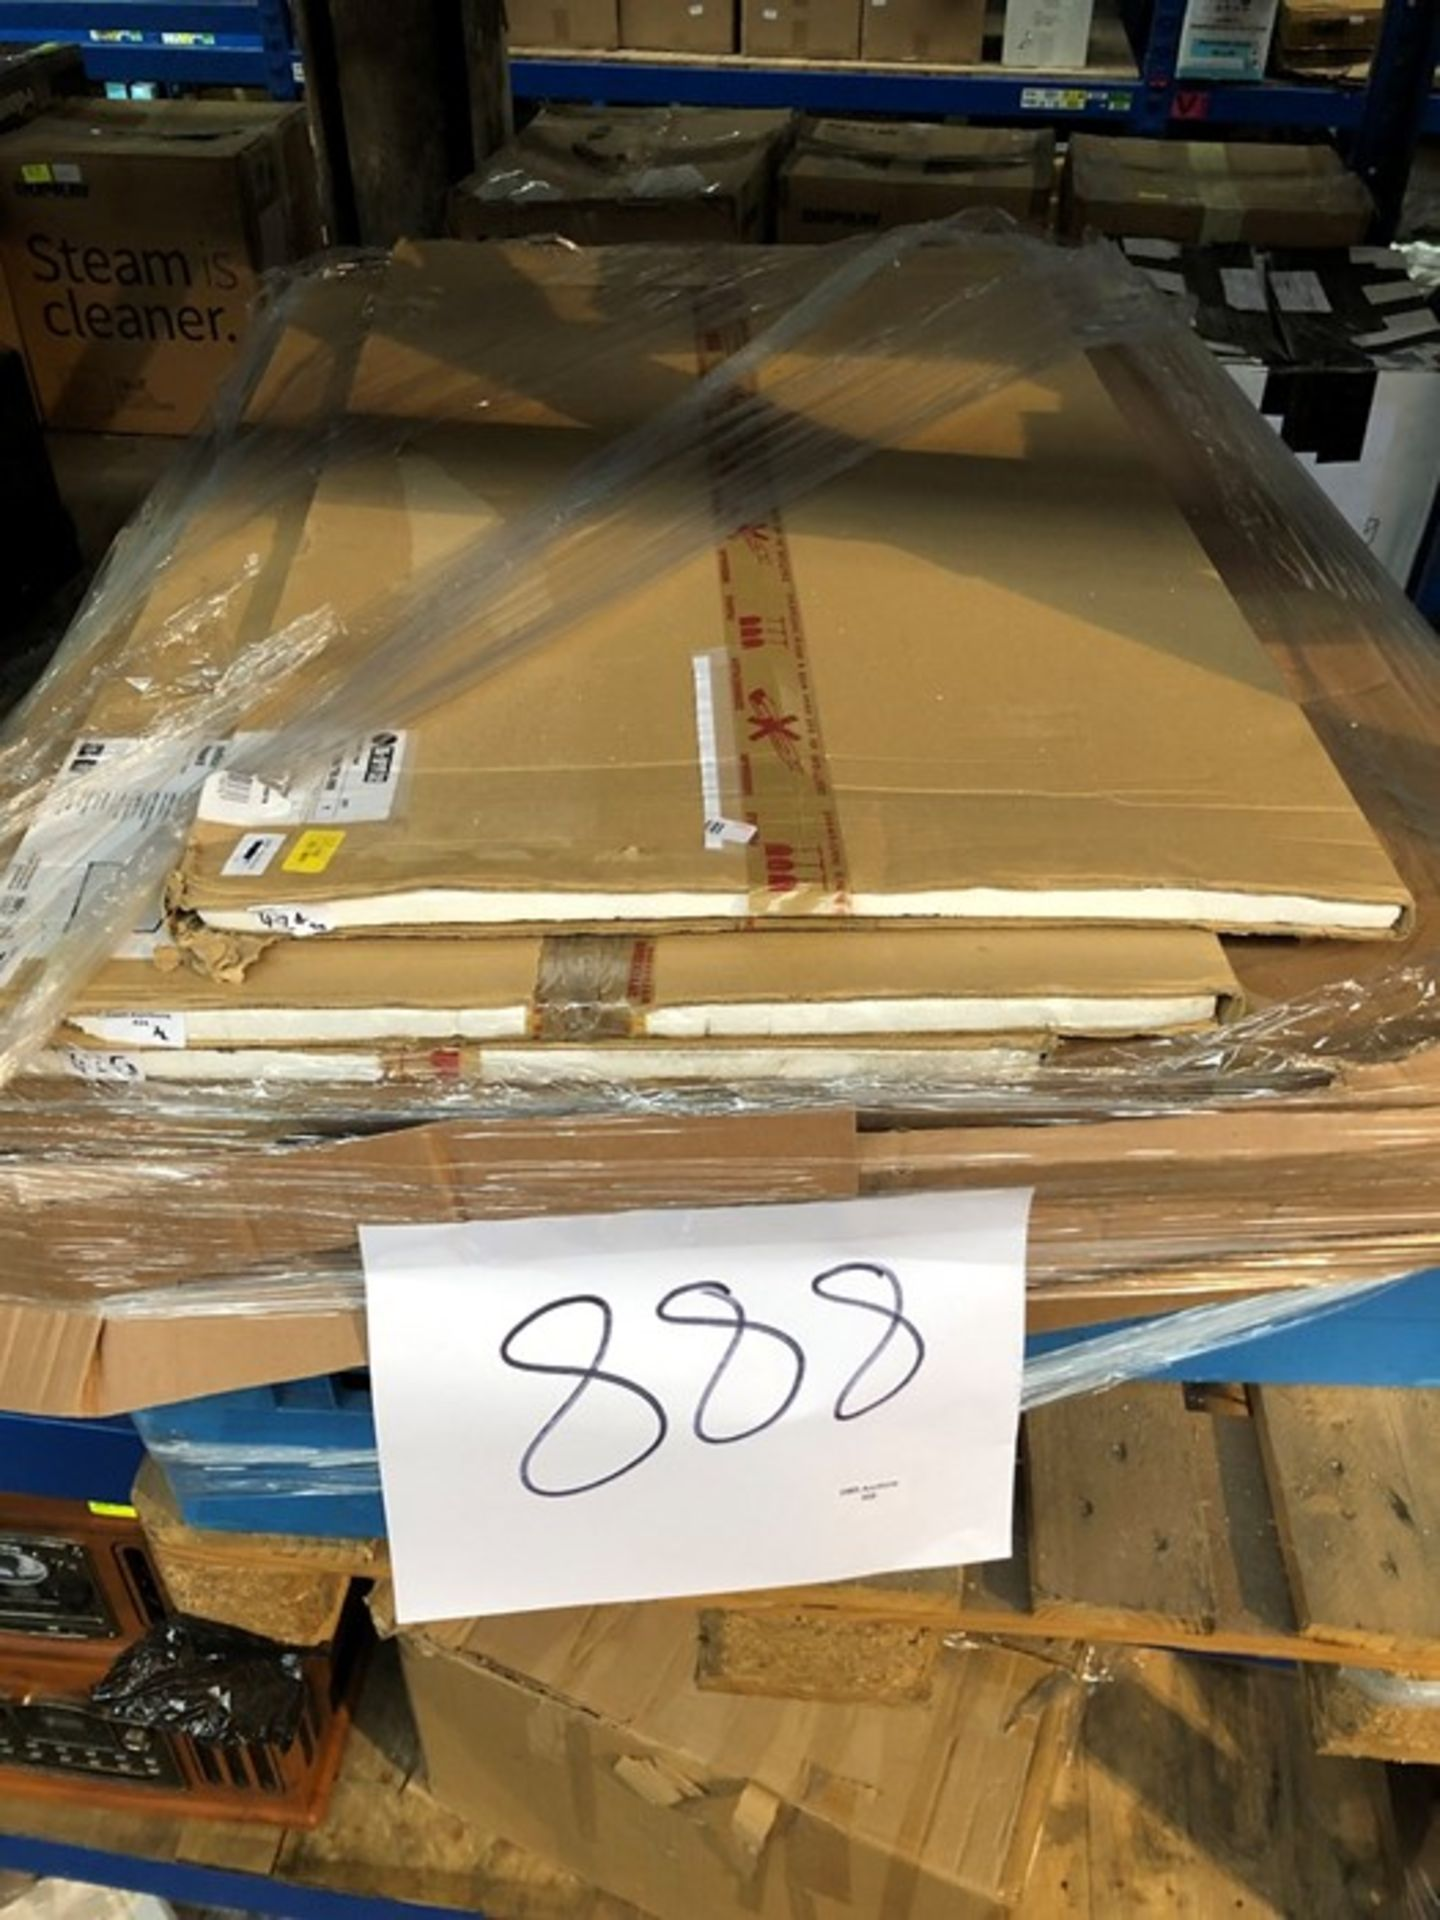 Lotto 888 - 1 LOT TO CONTAIN ASSORTED WHITEBOARDS AND ADVANCE LED LIGHTING SOLUTIONS (PUBLIC VIEWING AVAILABLE)